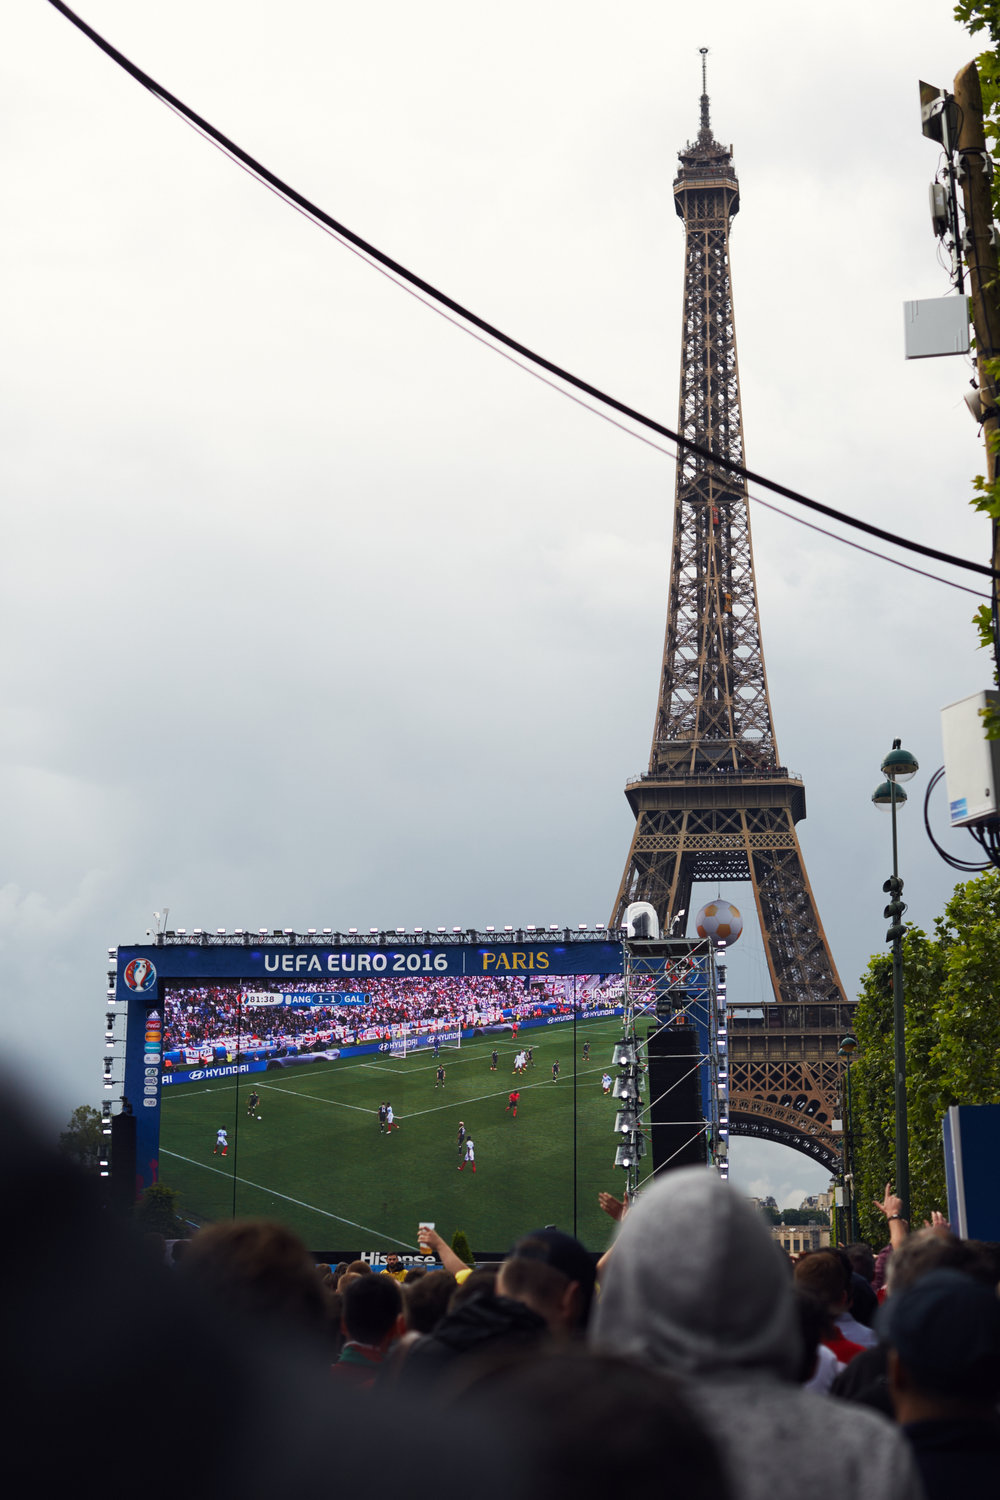 AlexSheridan_1606_Paris_10931.jpg